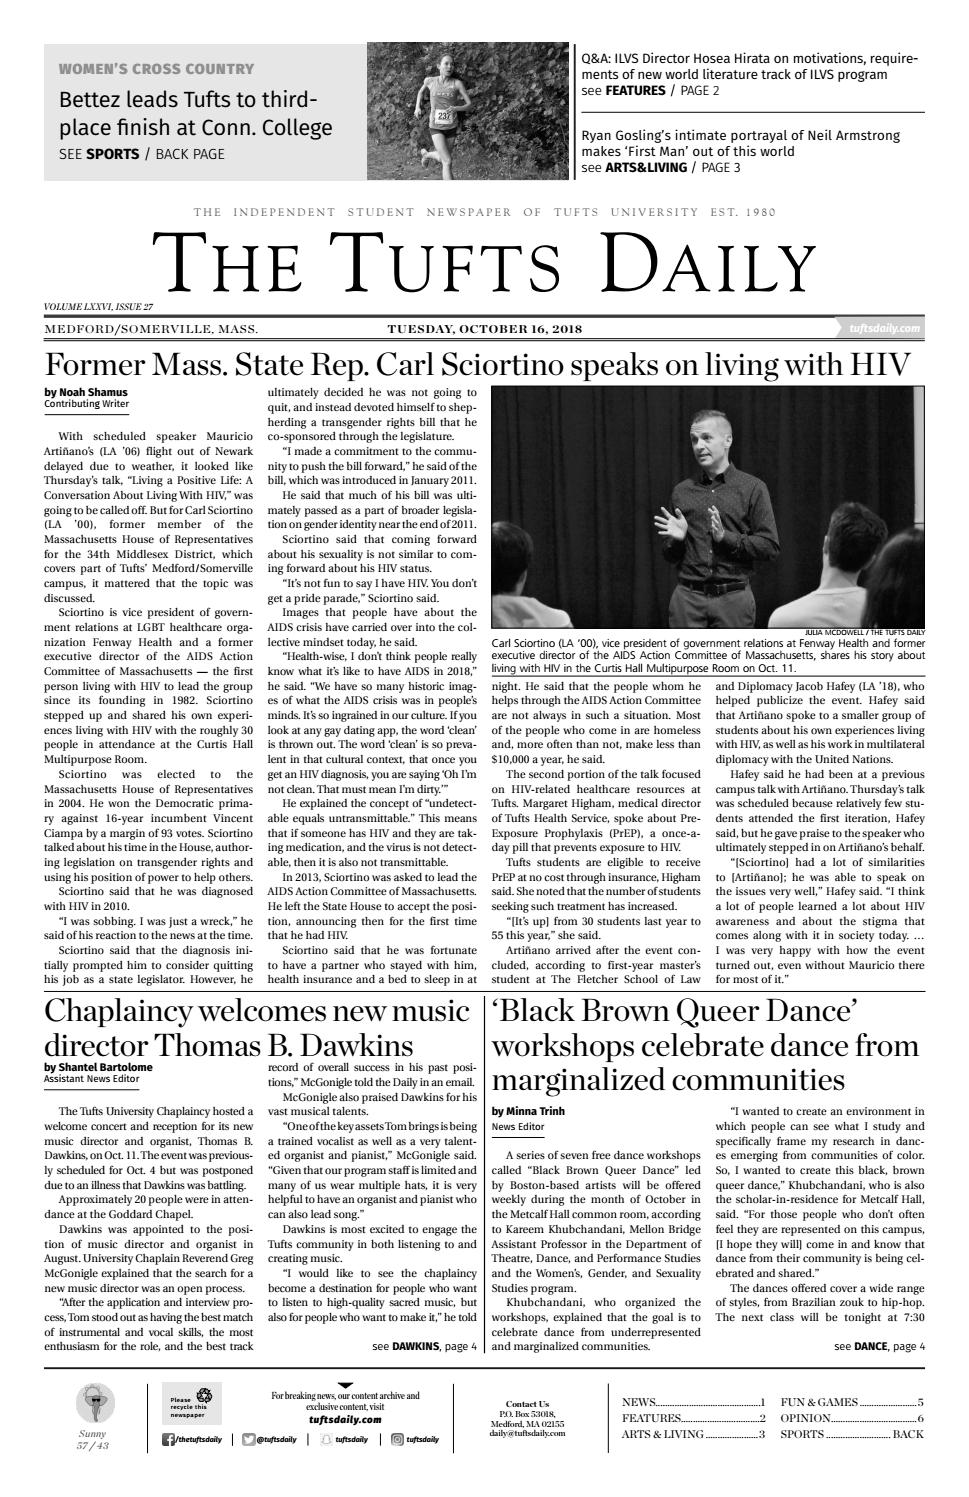 The Tufts Daily - Tuesday, October 16, 2018 by Tufts Daily - issuu